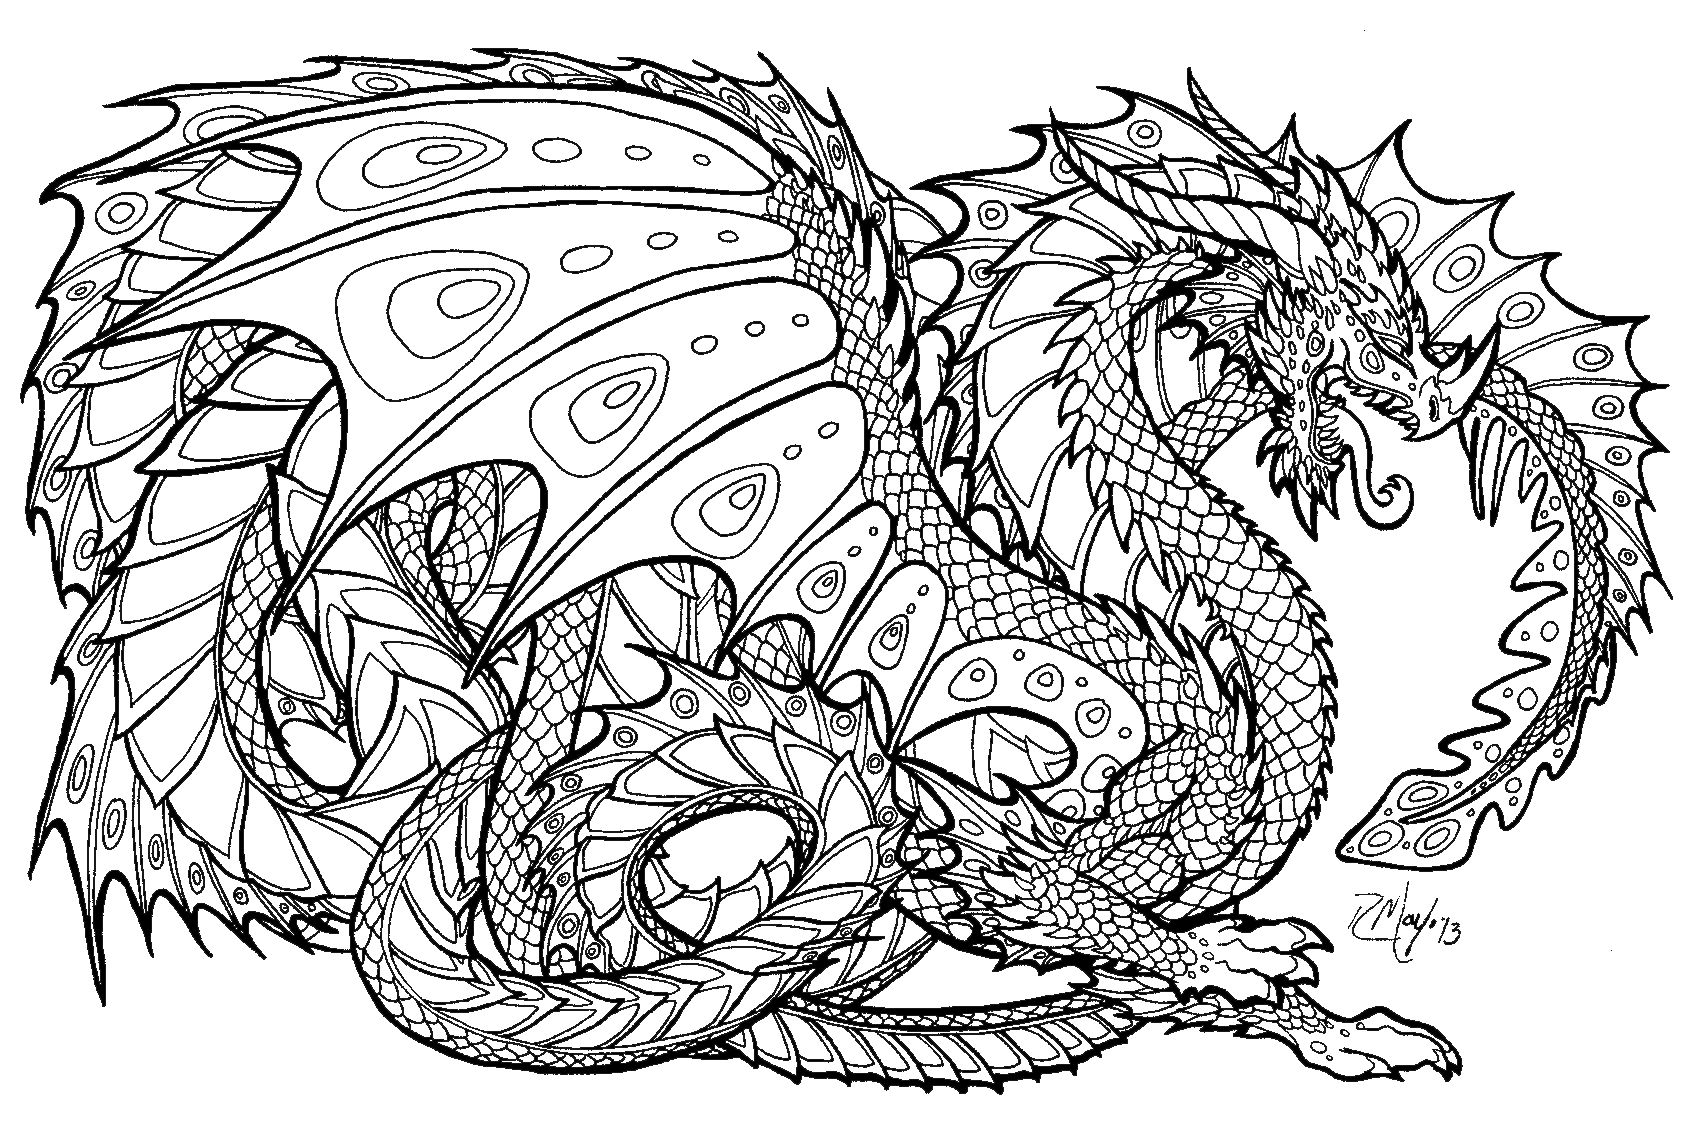 Realistic Dragon Coloring Pages Bing Images Coloring pages for